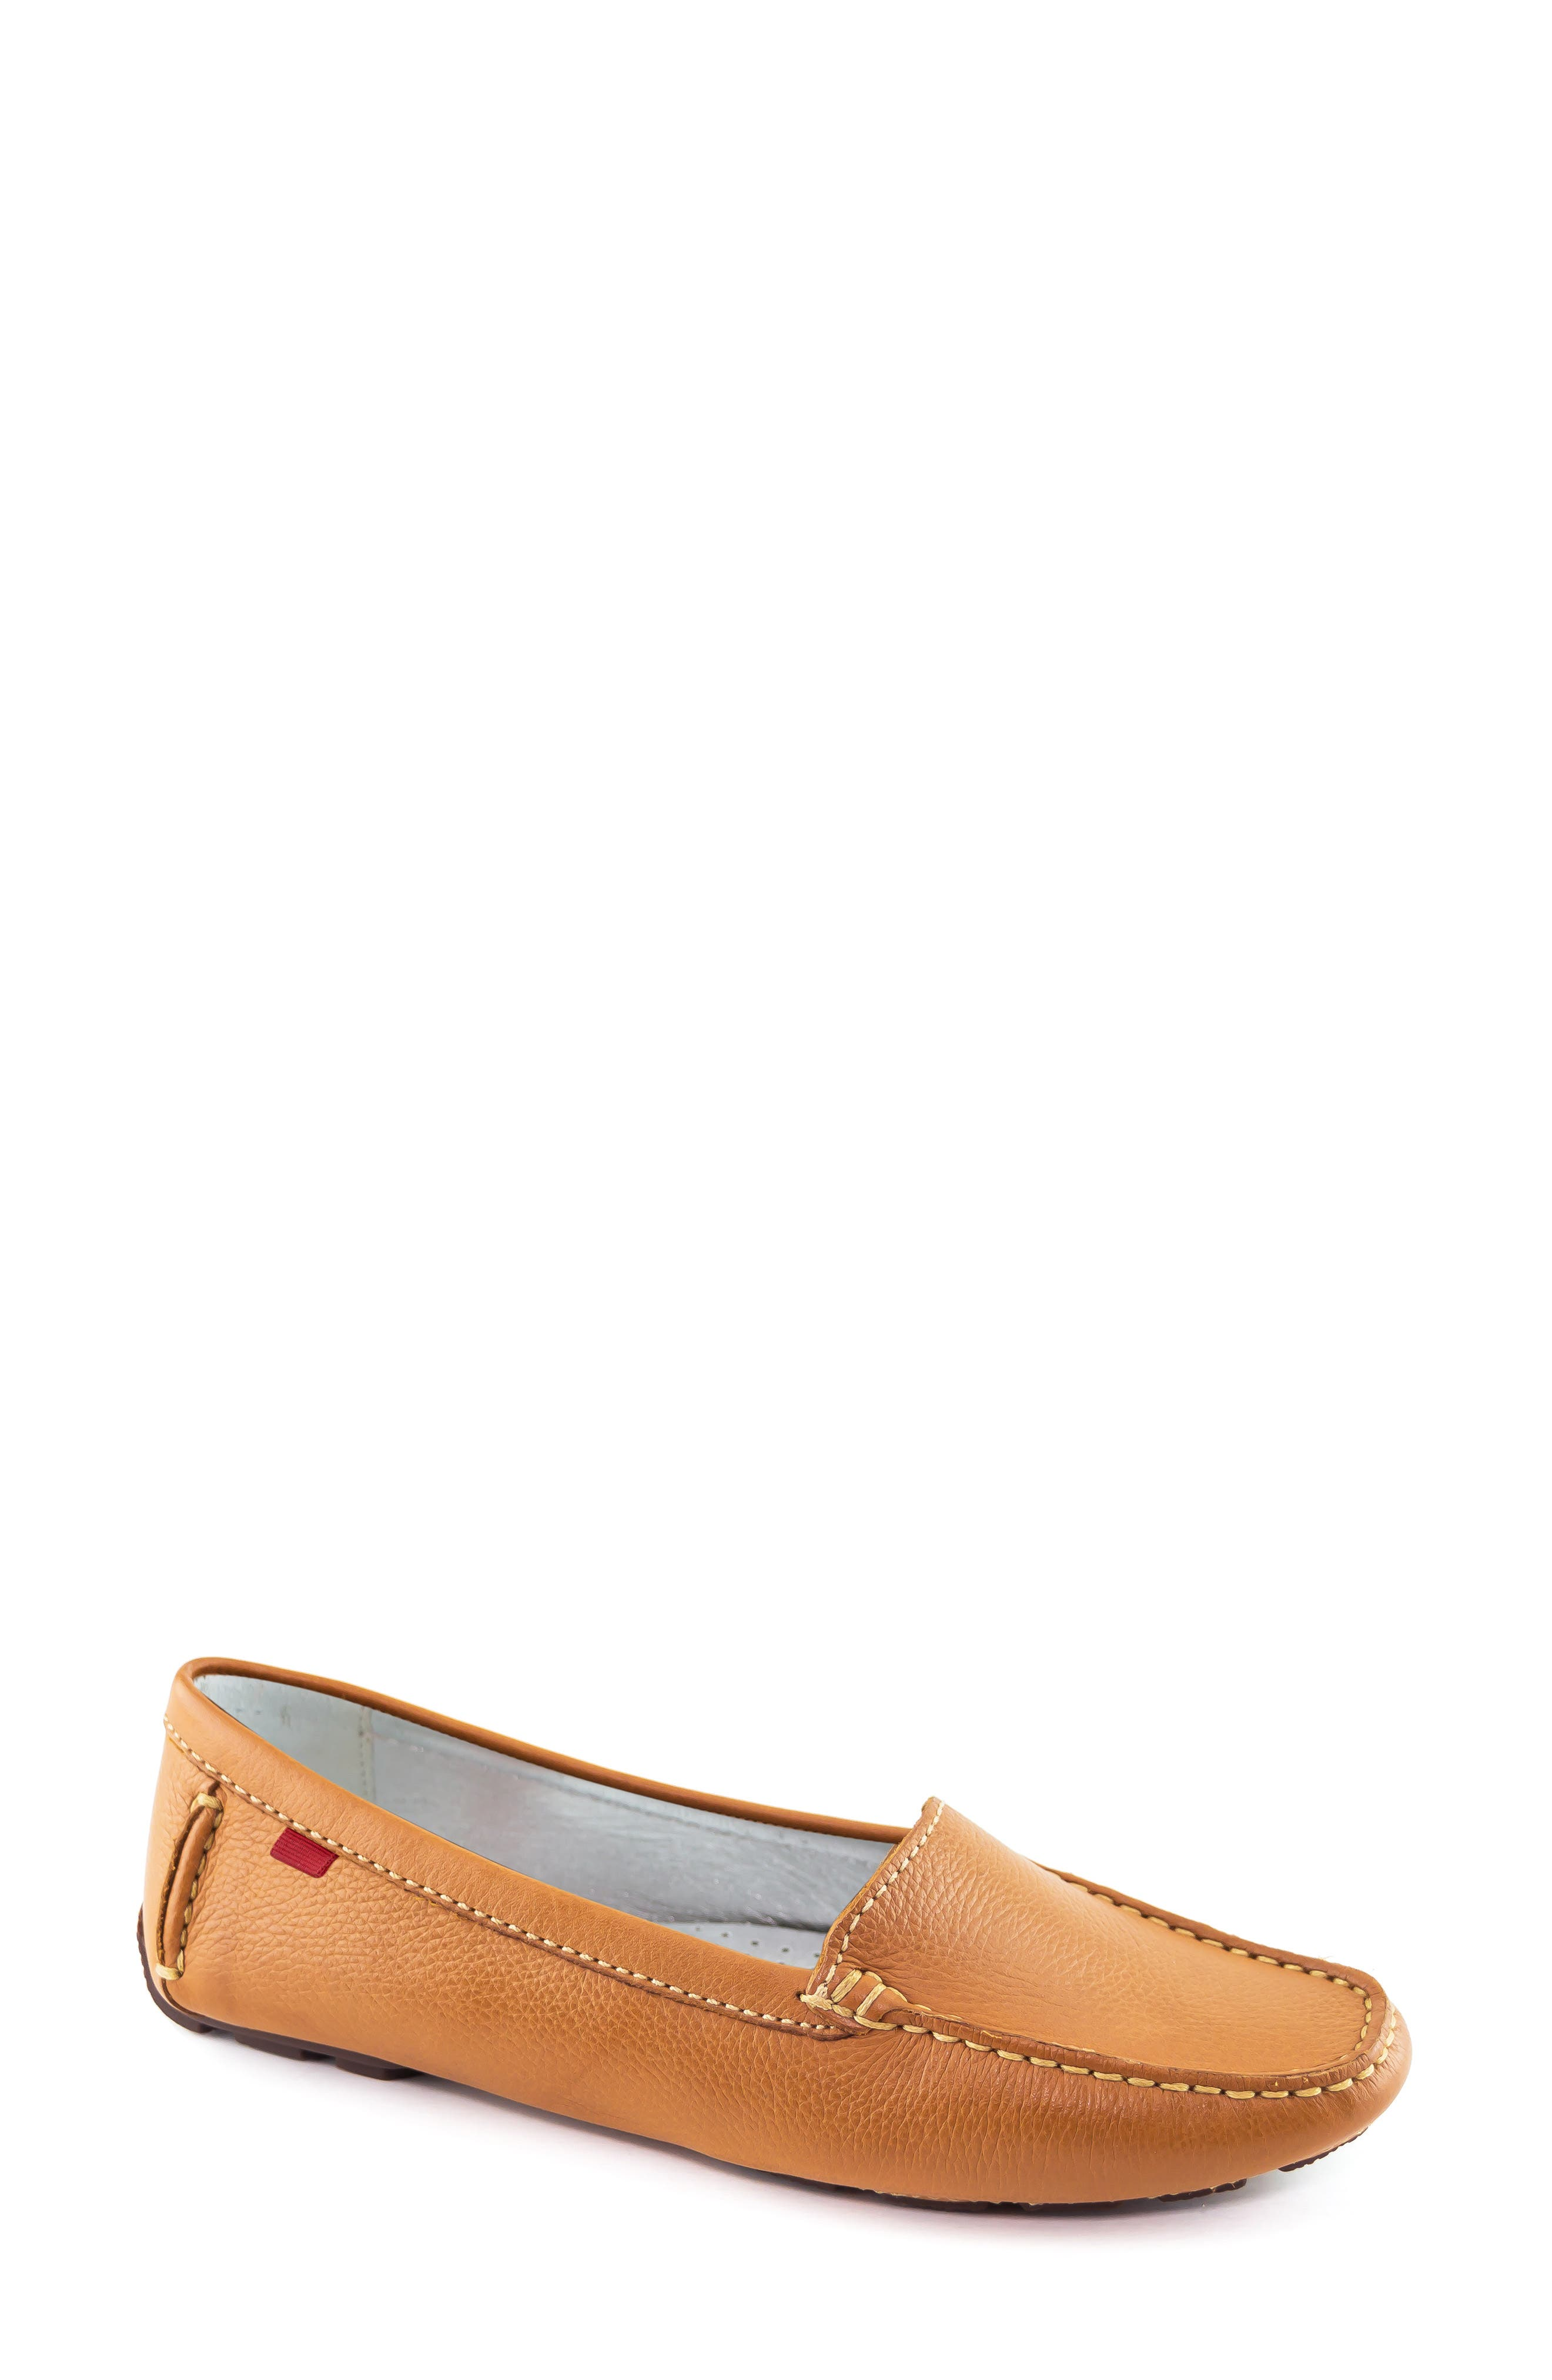 MARC JOSEPH NEW YORK, Manhasset Loafer, Main thumbnail 1, color, TAN/ NATURAL LEATHER